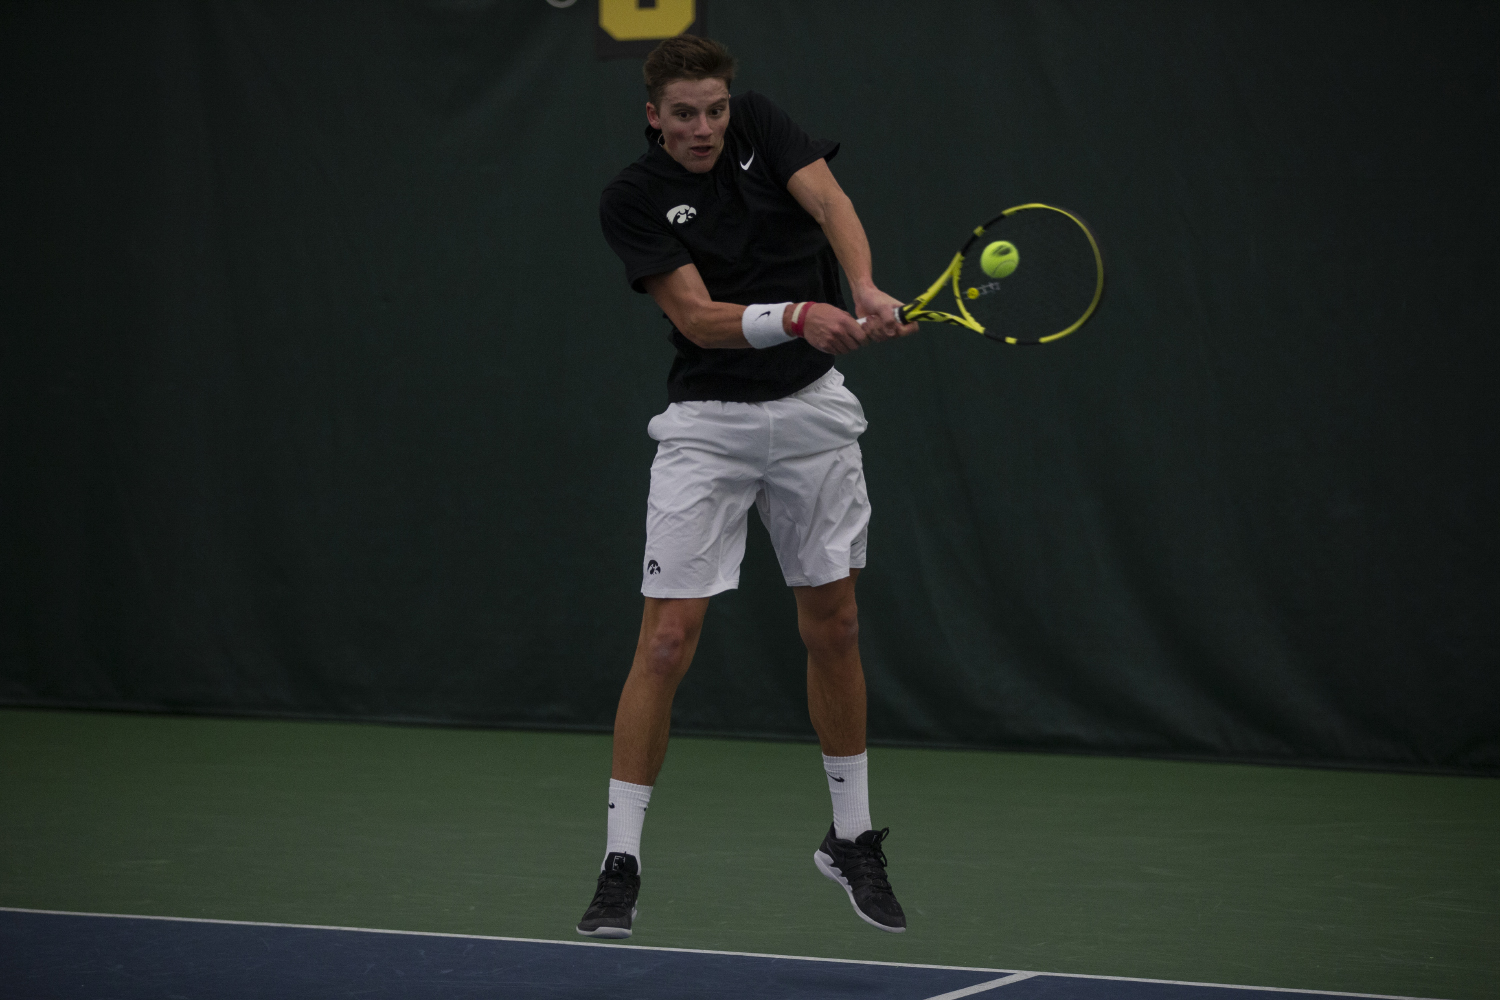 Joe Tyler hits the ball during men's tennis against the University of Nebraska Omaha at the Hawkeye Tennis and Recreation Complex on Feb. 15, 2019. The hawkeyes defeated Omaha 5-2. Tyler lost his single's match against Omaha's Davis Lawley.